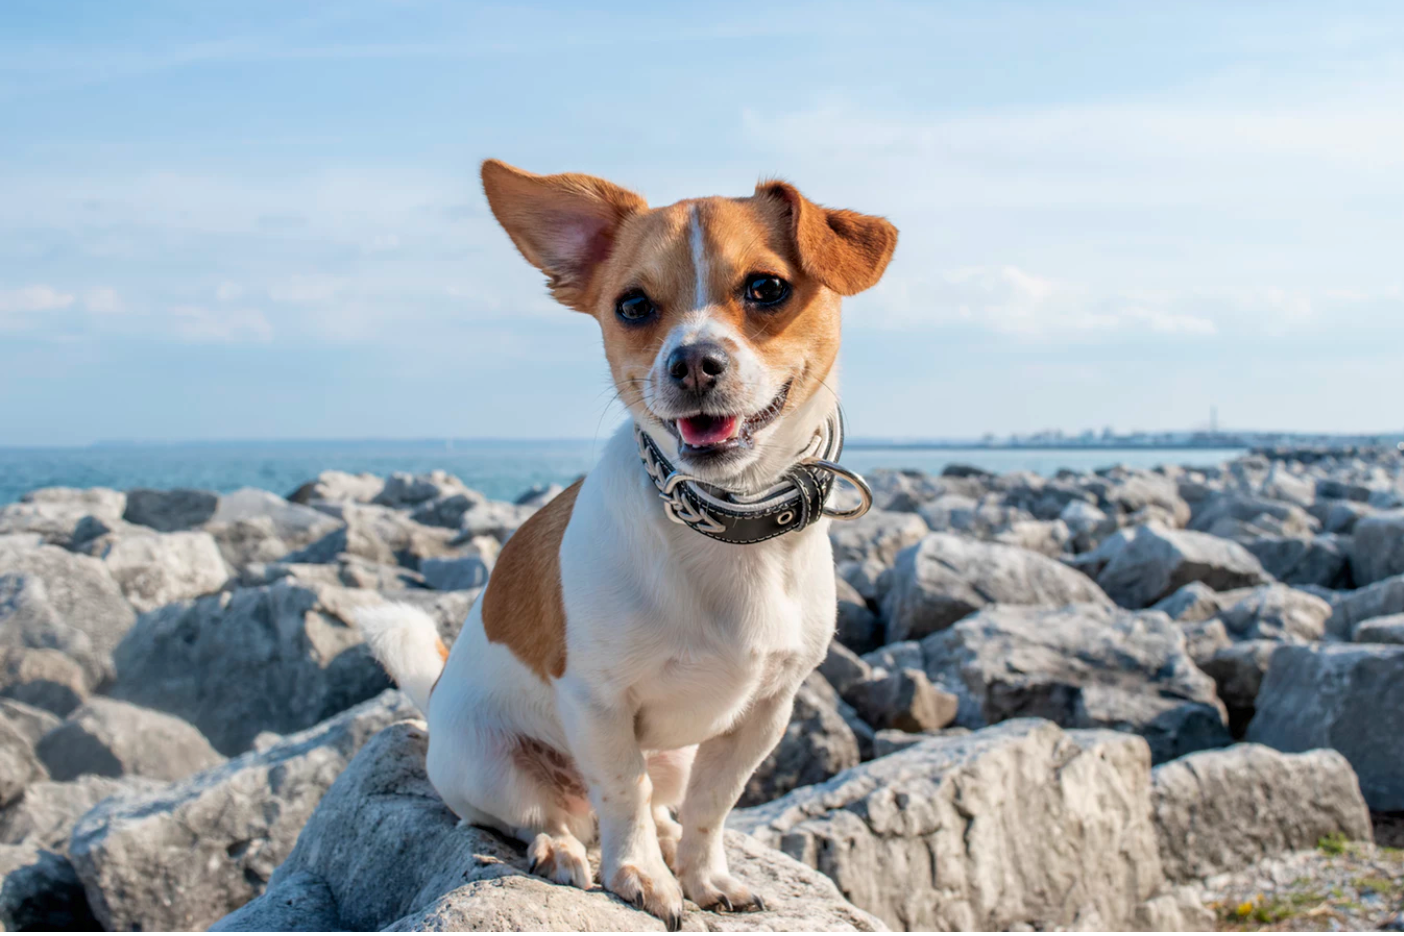 Harness Train Your Dog Easily with These 6 Quick Hacks